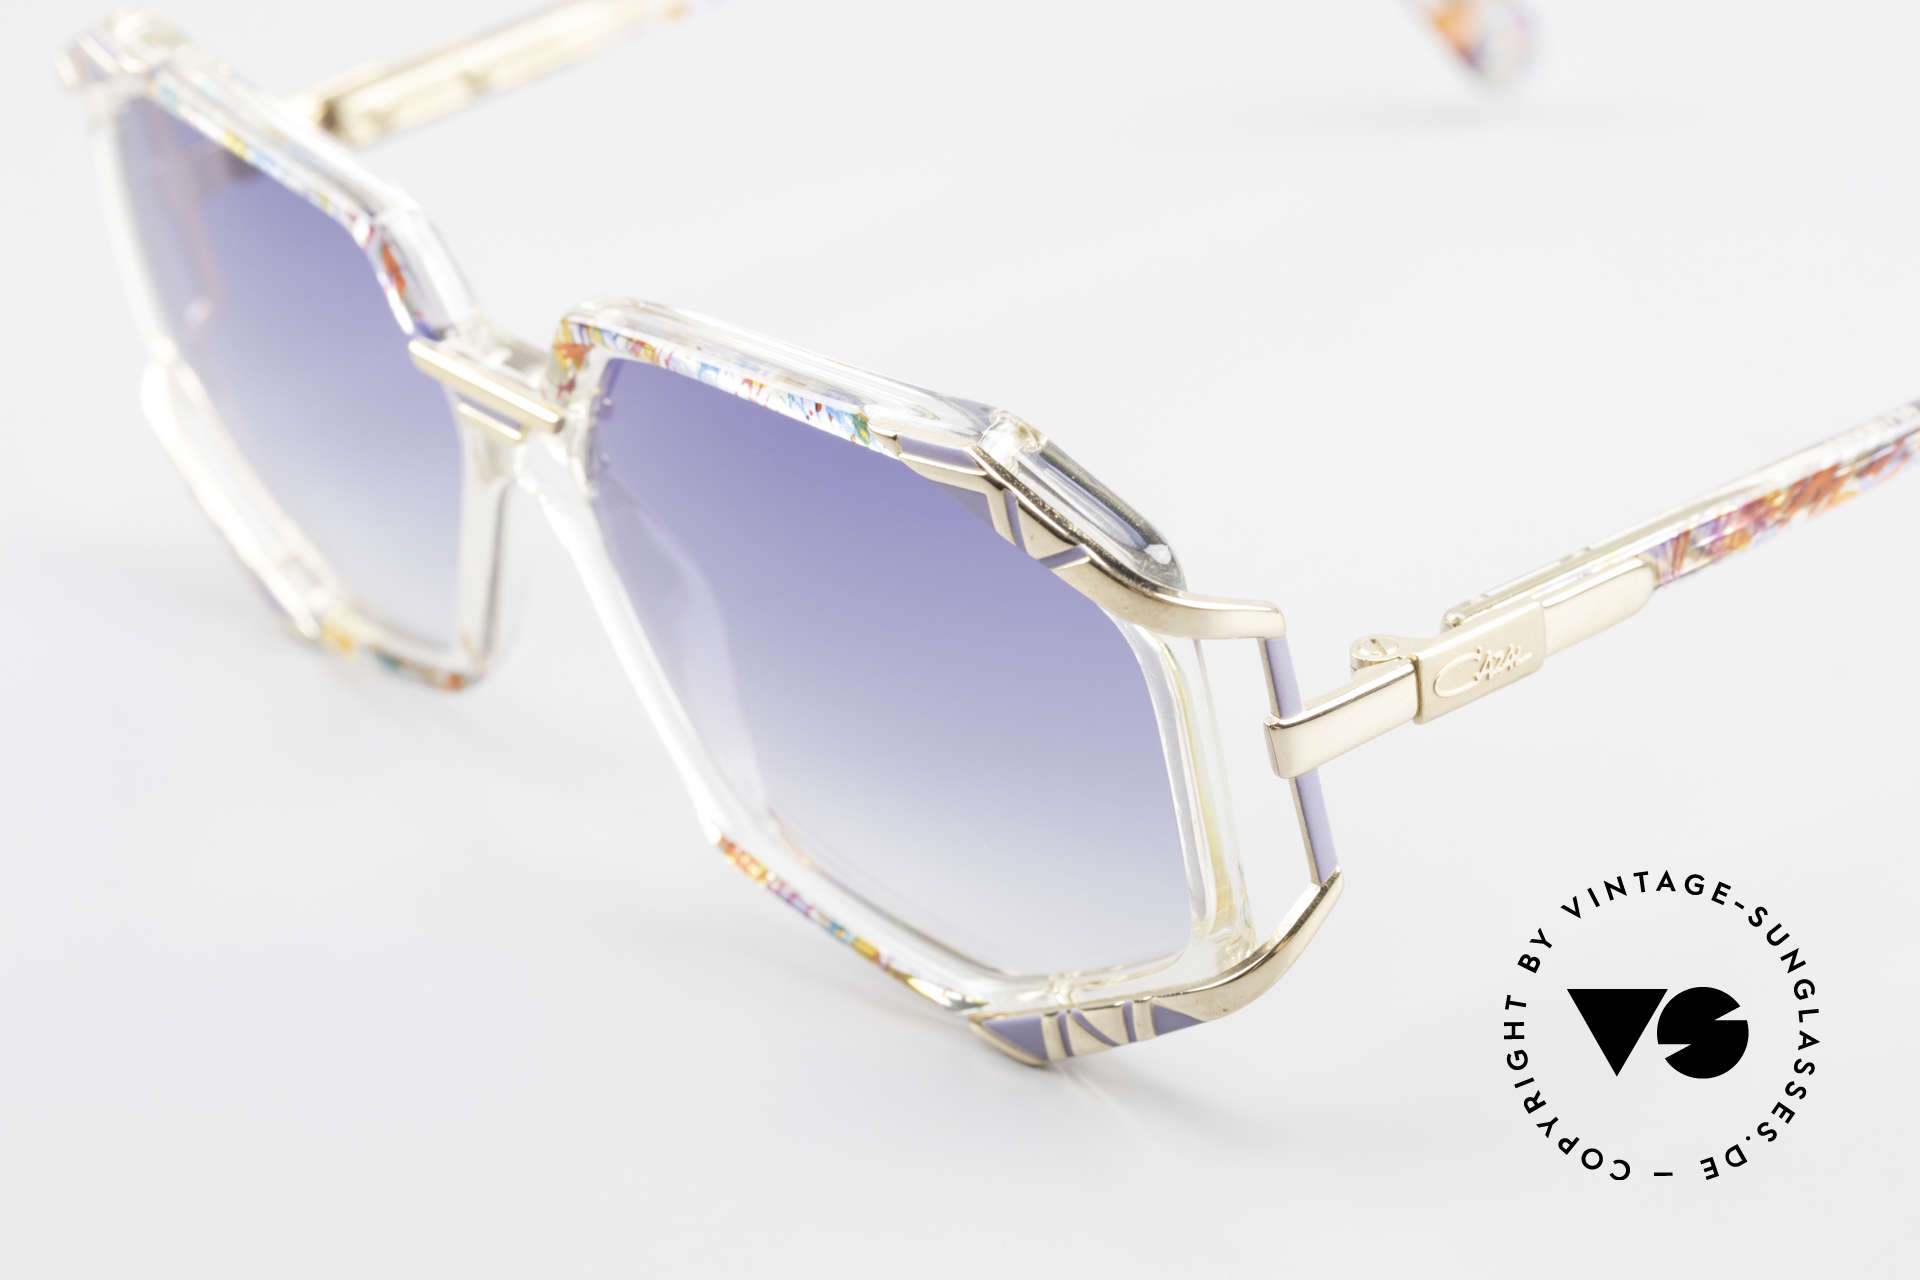 Cazal 355 Extraordinary Sunglasses 90's, color name: multicolor shaded / crystal / gray / gold, Made for Women